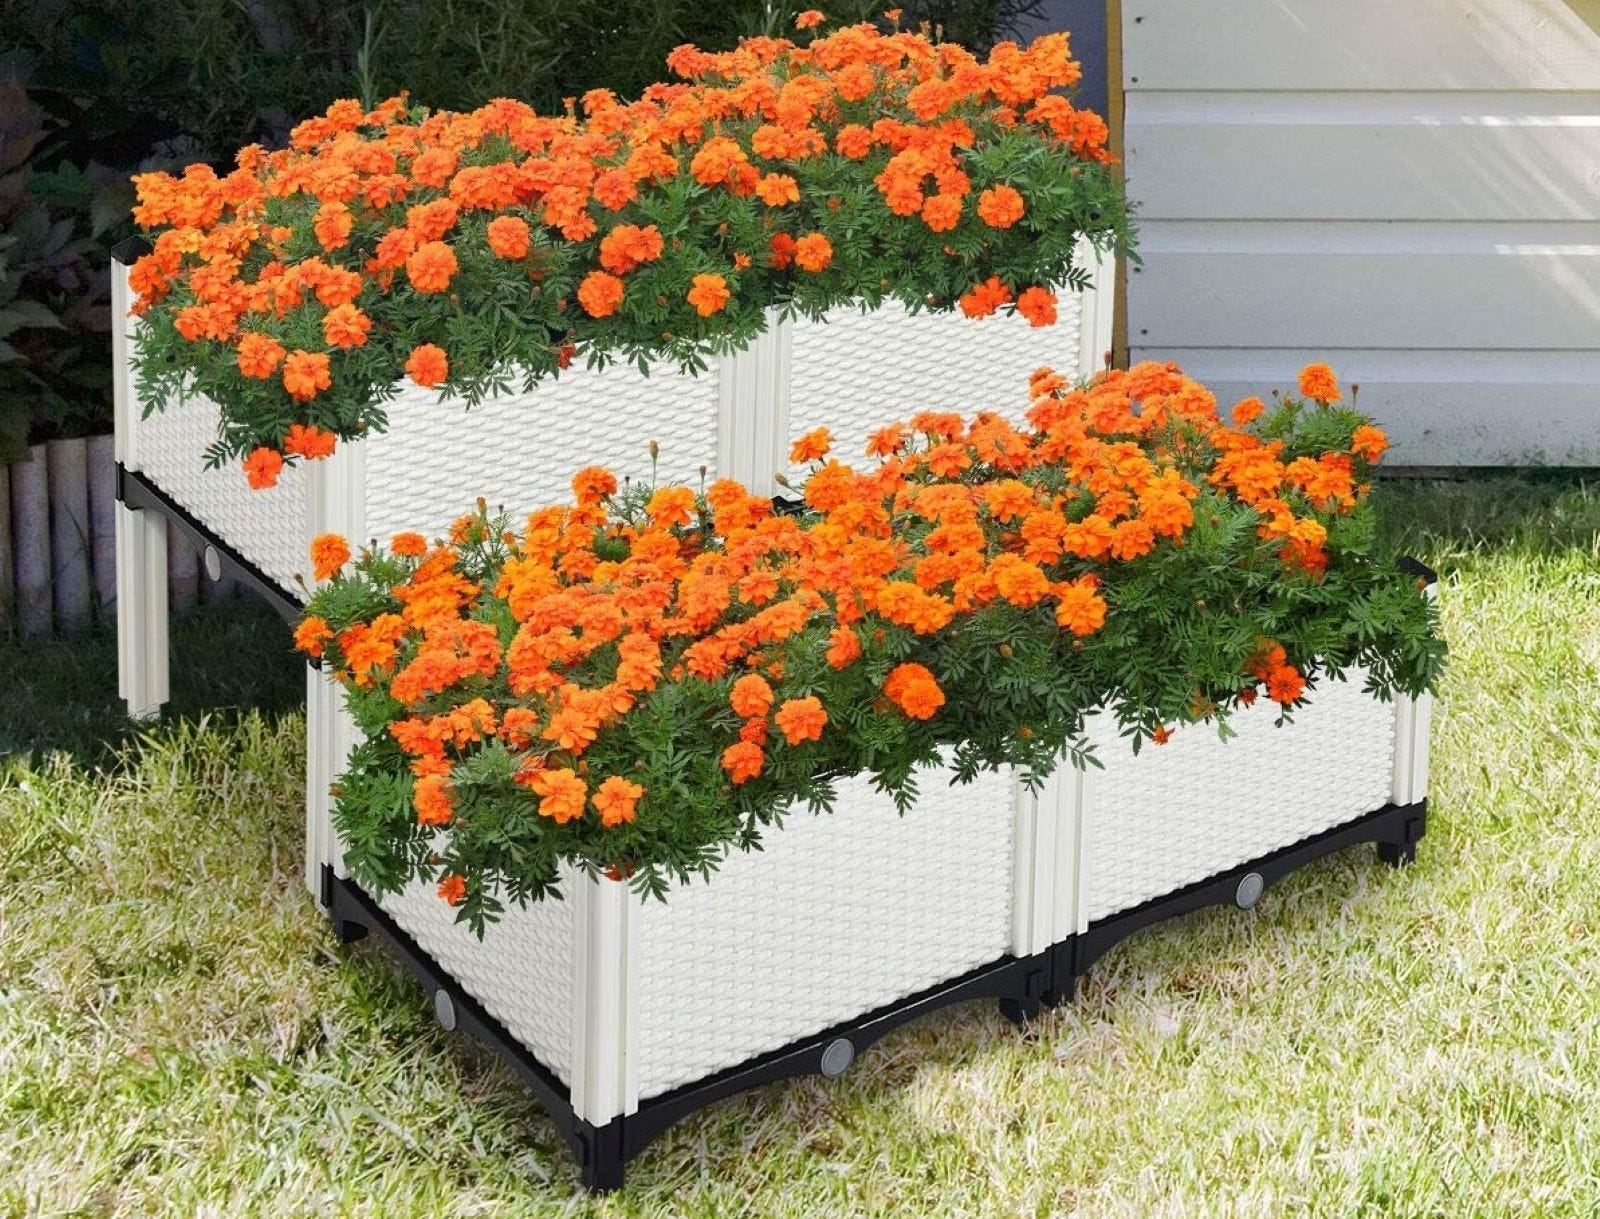 The Giantex set of four Raised Garden Bed with orange flowers.